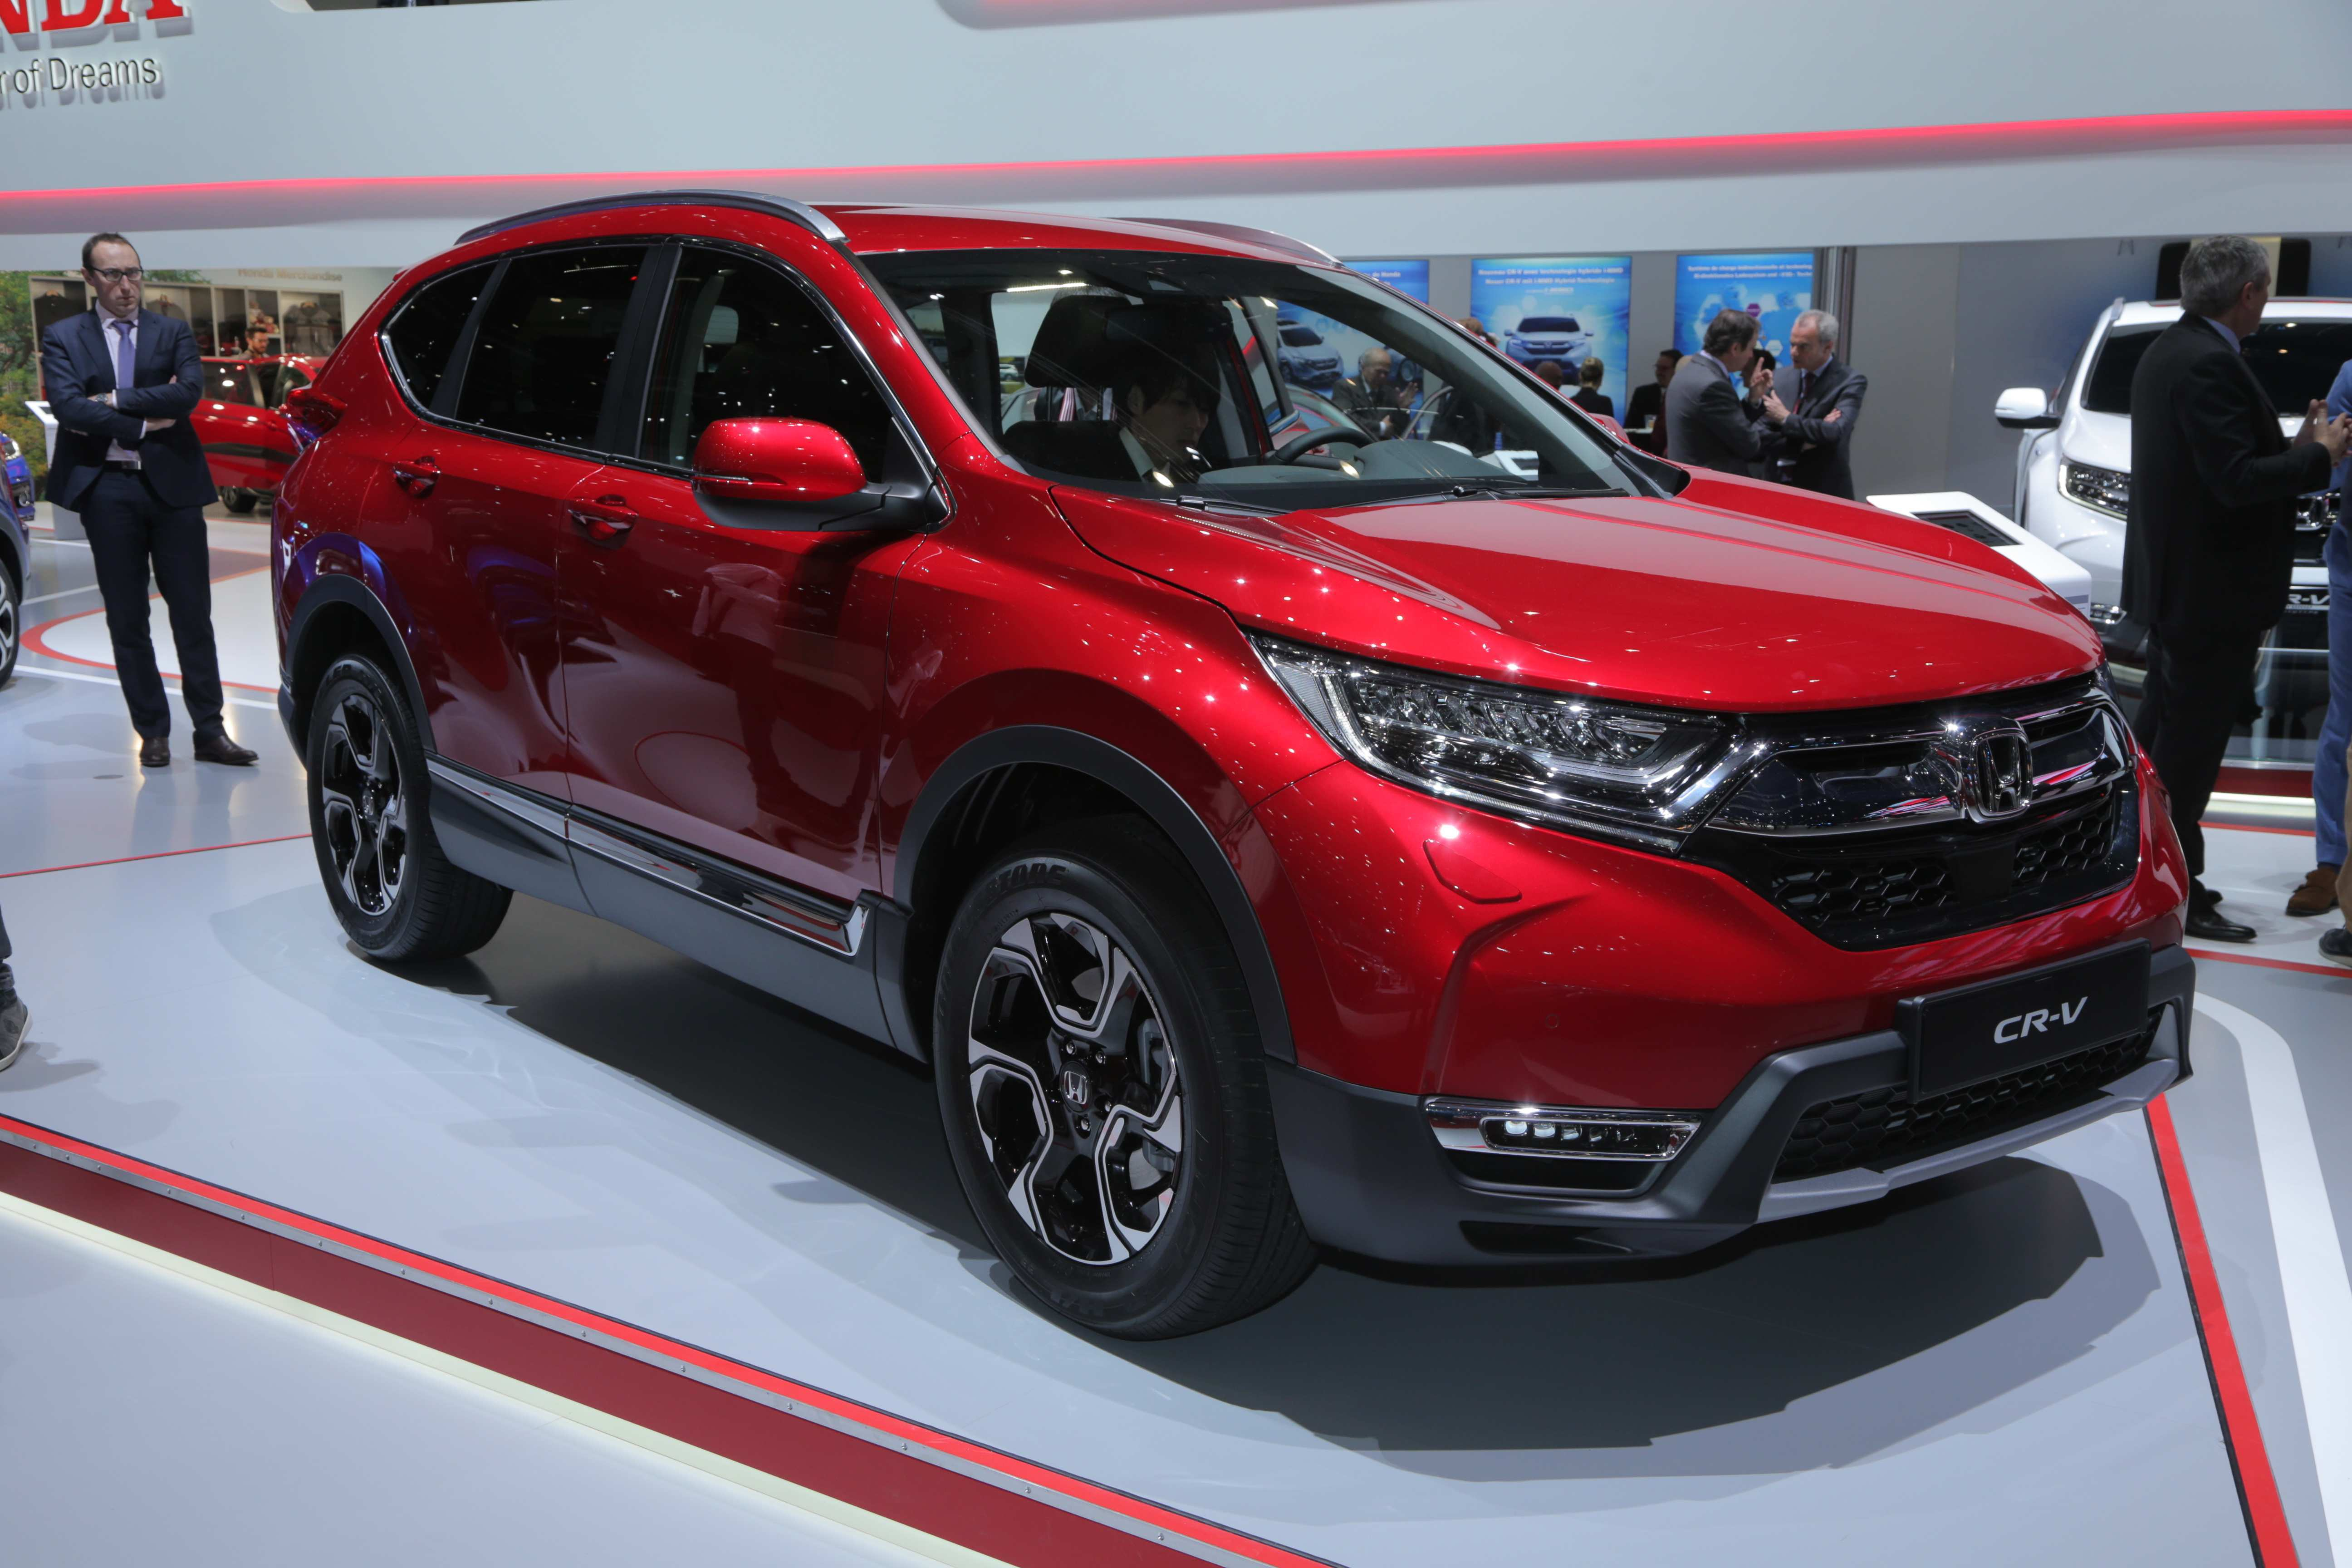 93 New The Latest Honda 2019 New Release Exterior and Interior by The Latest Honda 2019 New Release